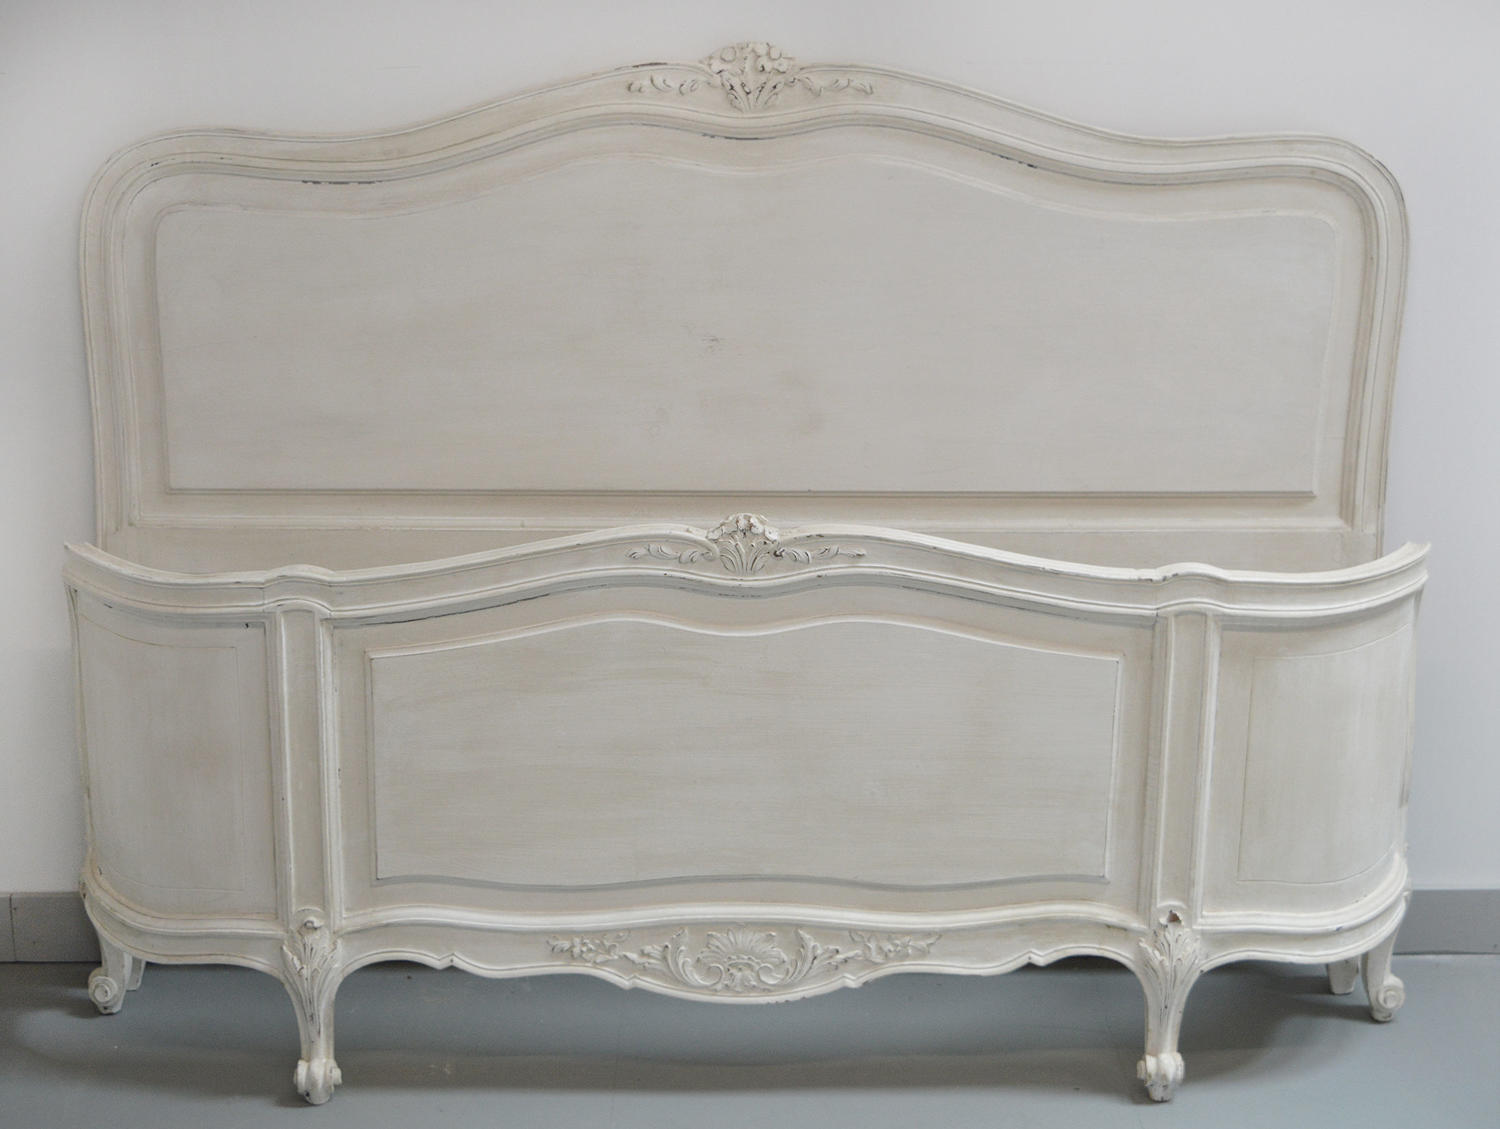 King size Louis XV style curved end bedstead